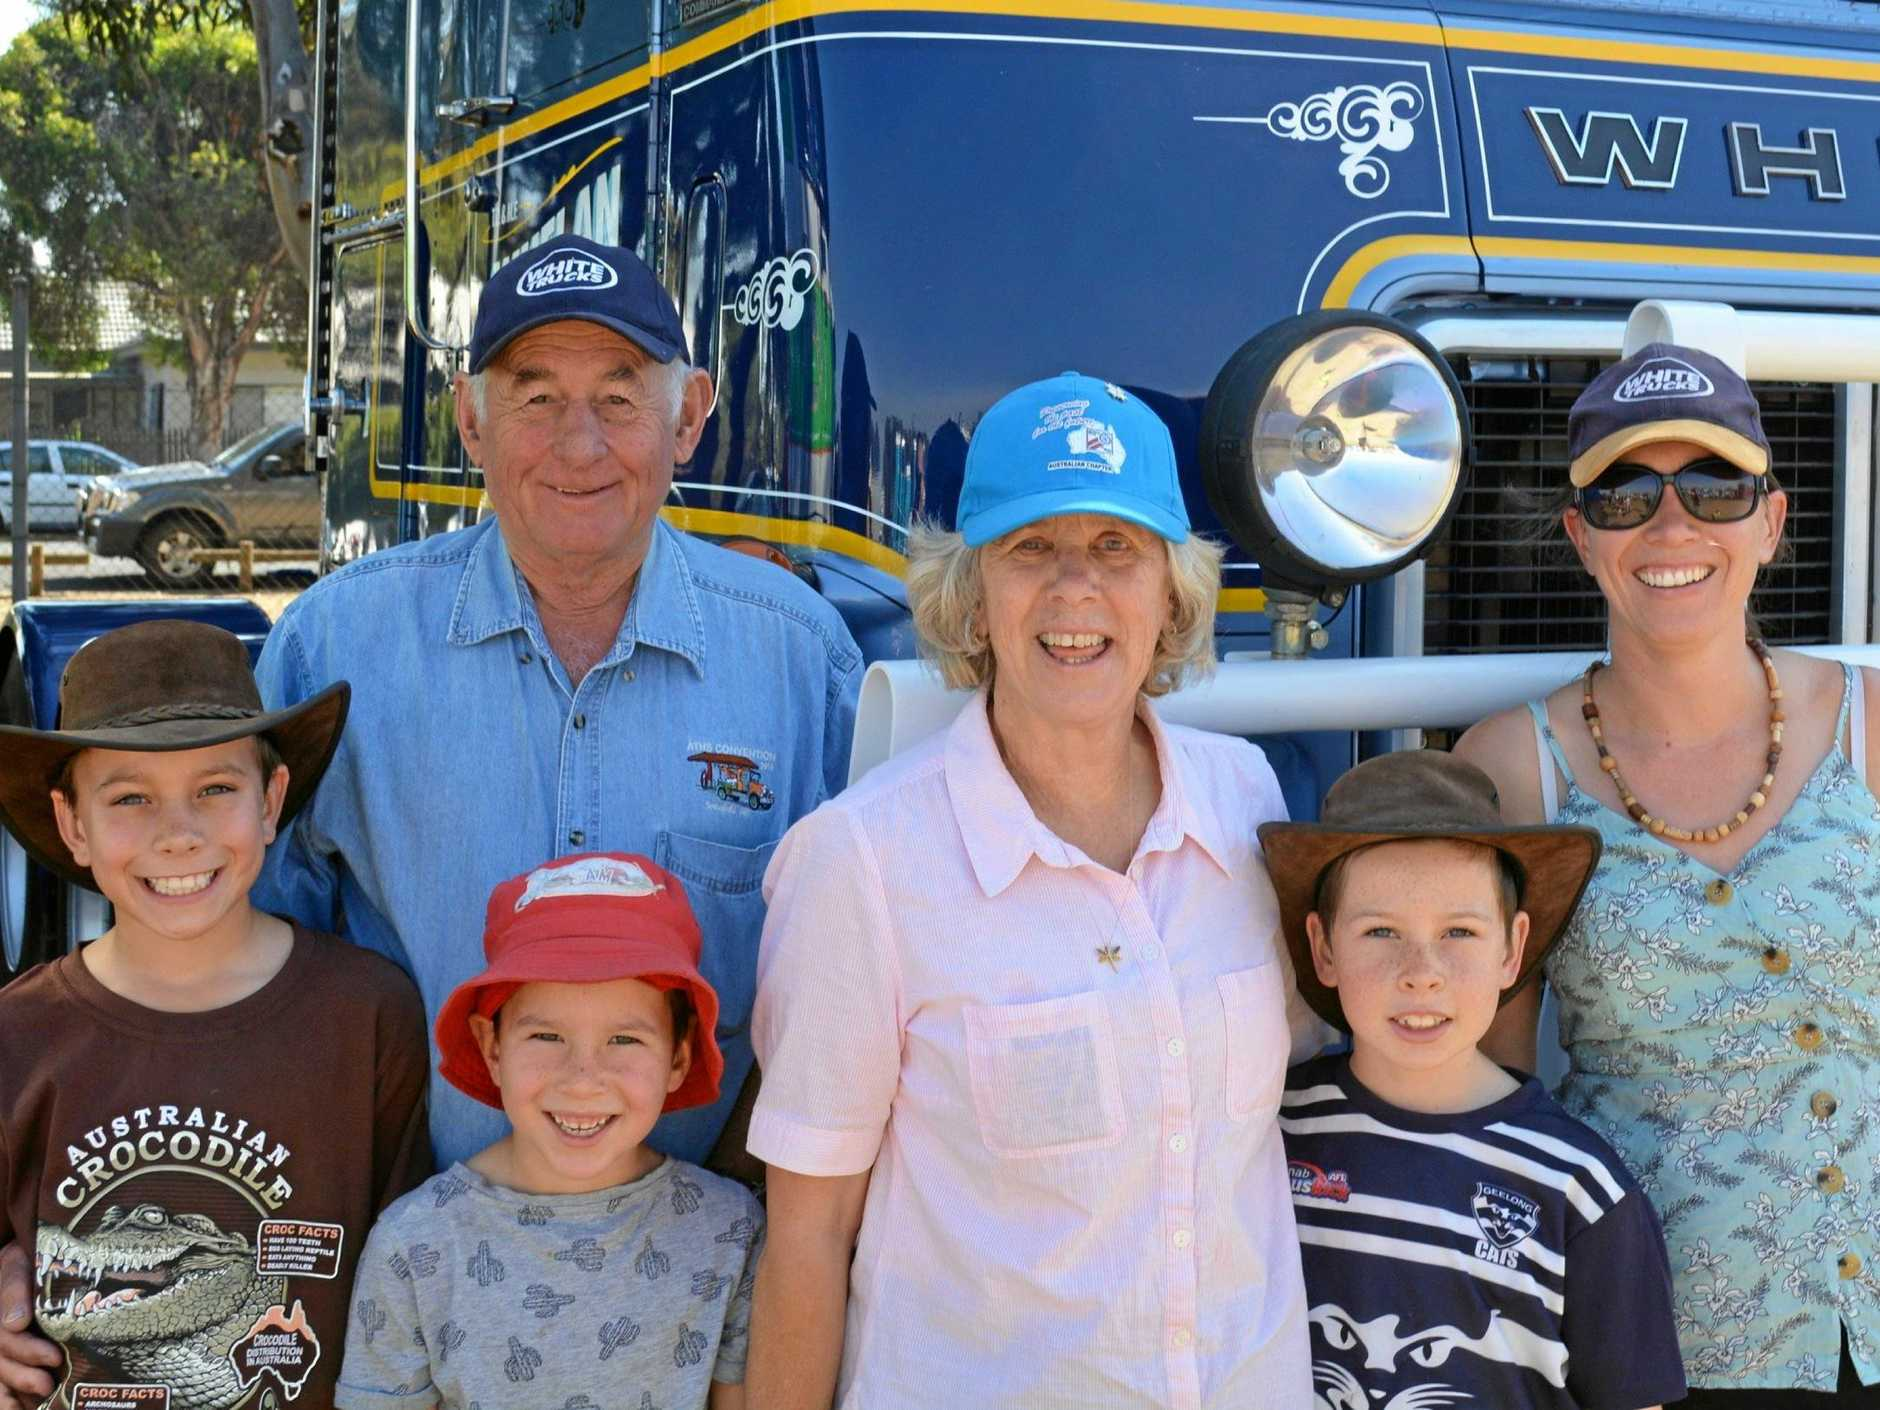 Terry and Marg Whelan with daughter Andi (right) and grandkids Tom (10), Sam (6) and James (8). Max, 3, was a bit camera shy.